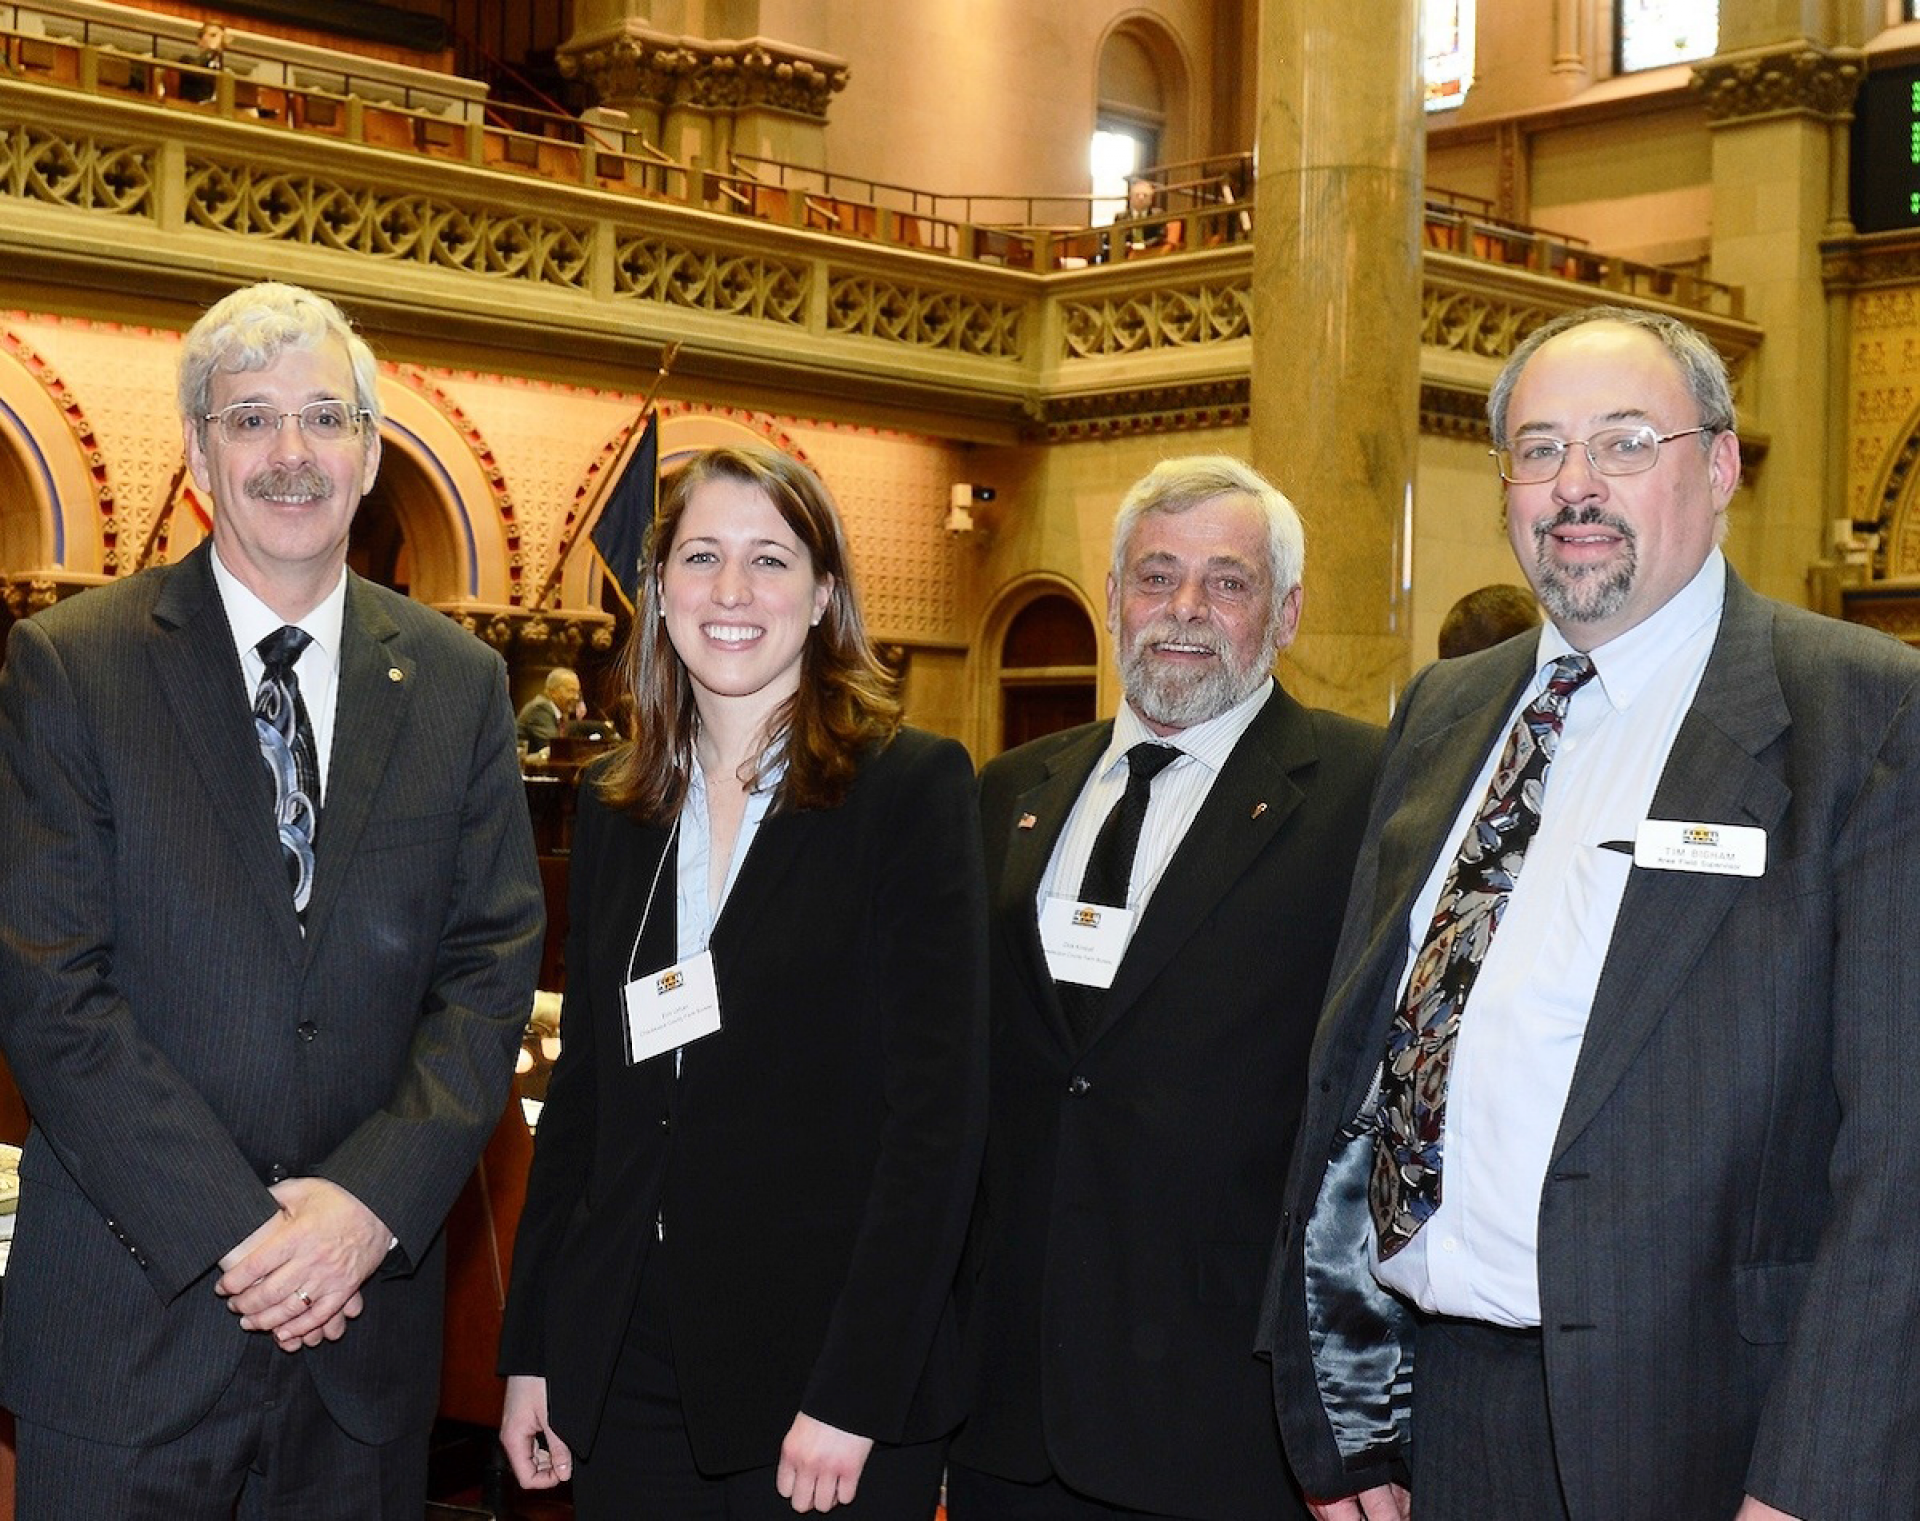 Assemblyman Andrew Goodell (R,C,I-Chautauqua) on the floor of the Assembly with Erin Urban, Chautauqua County Farm Bureau President Dick Kimball, and Farm Bureau Senior Advisor Tim Bigham.